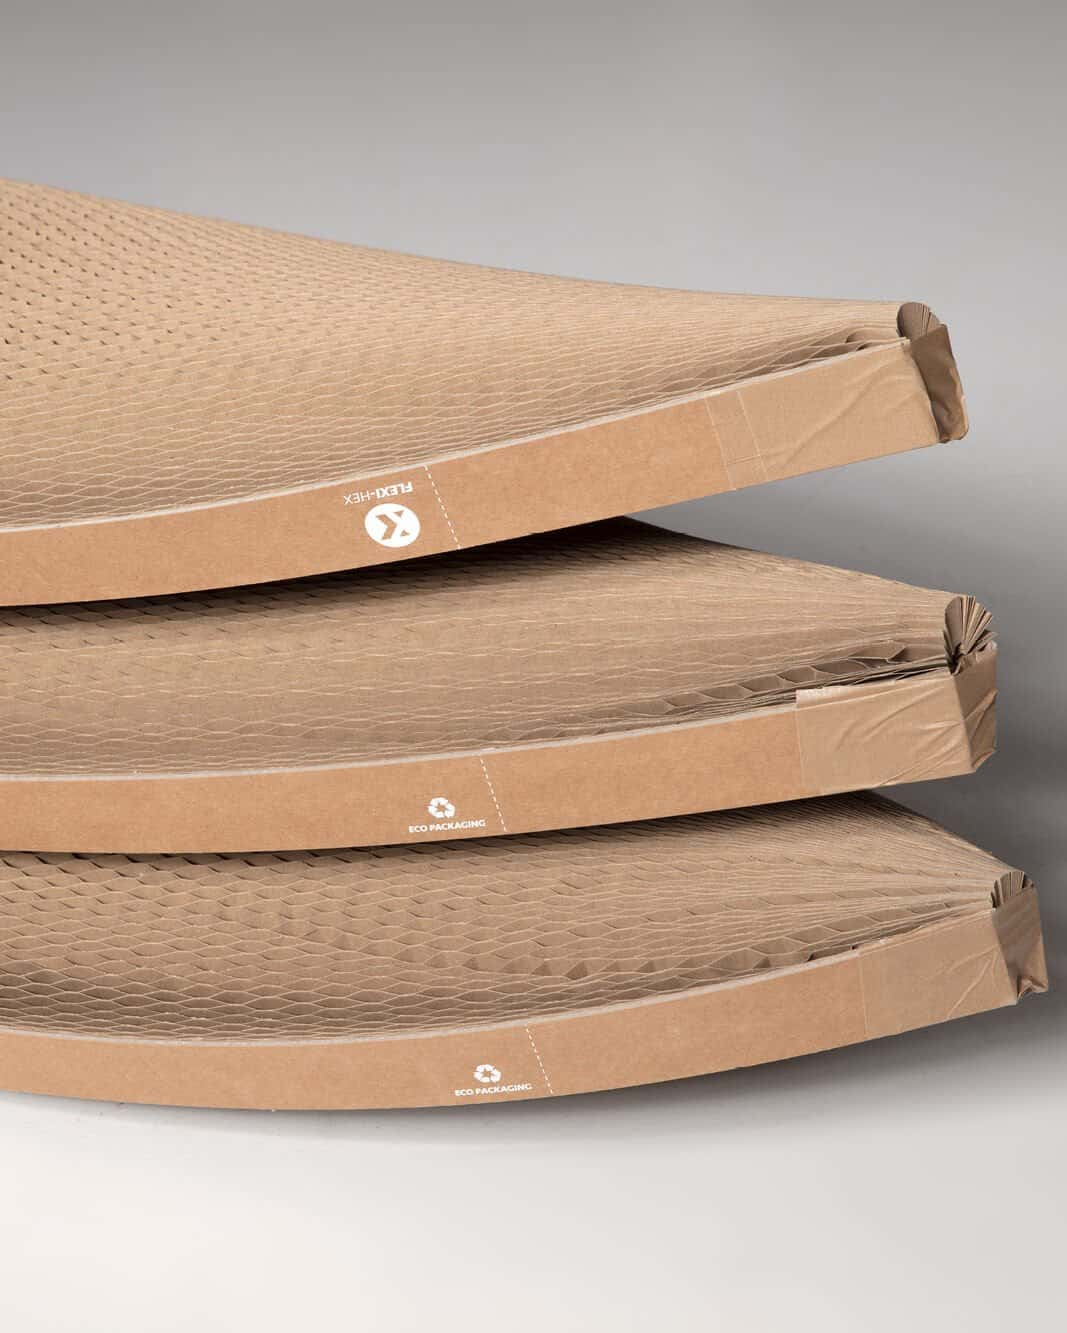 3 surfboards packaged in Flexi-Hex